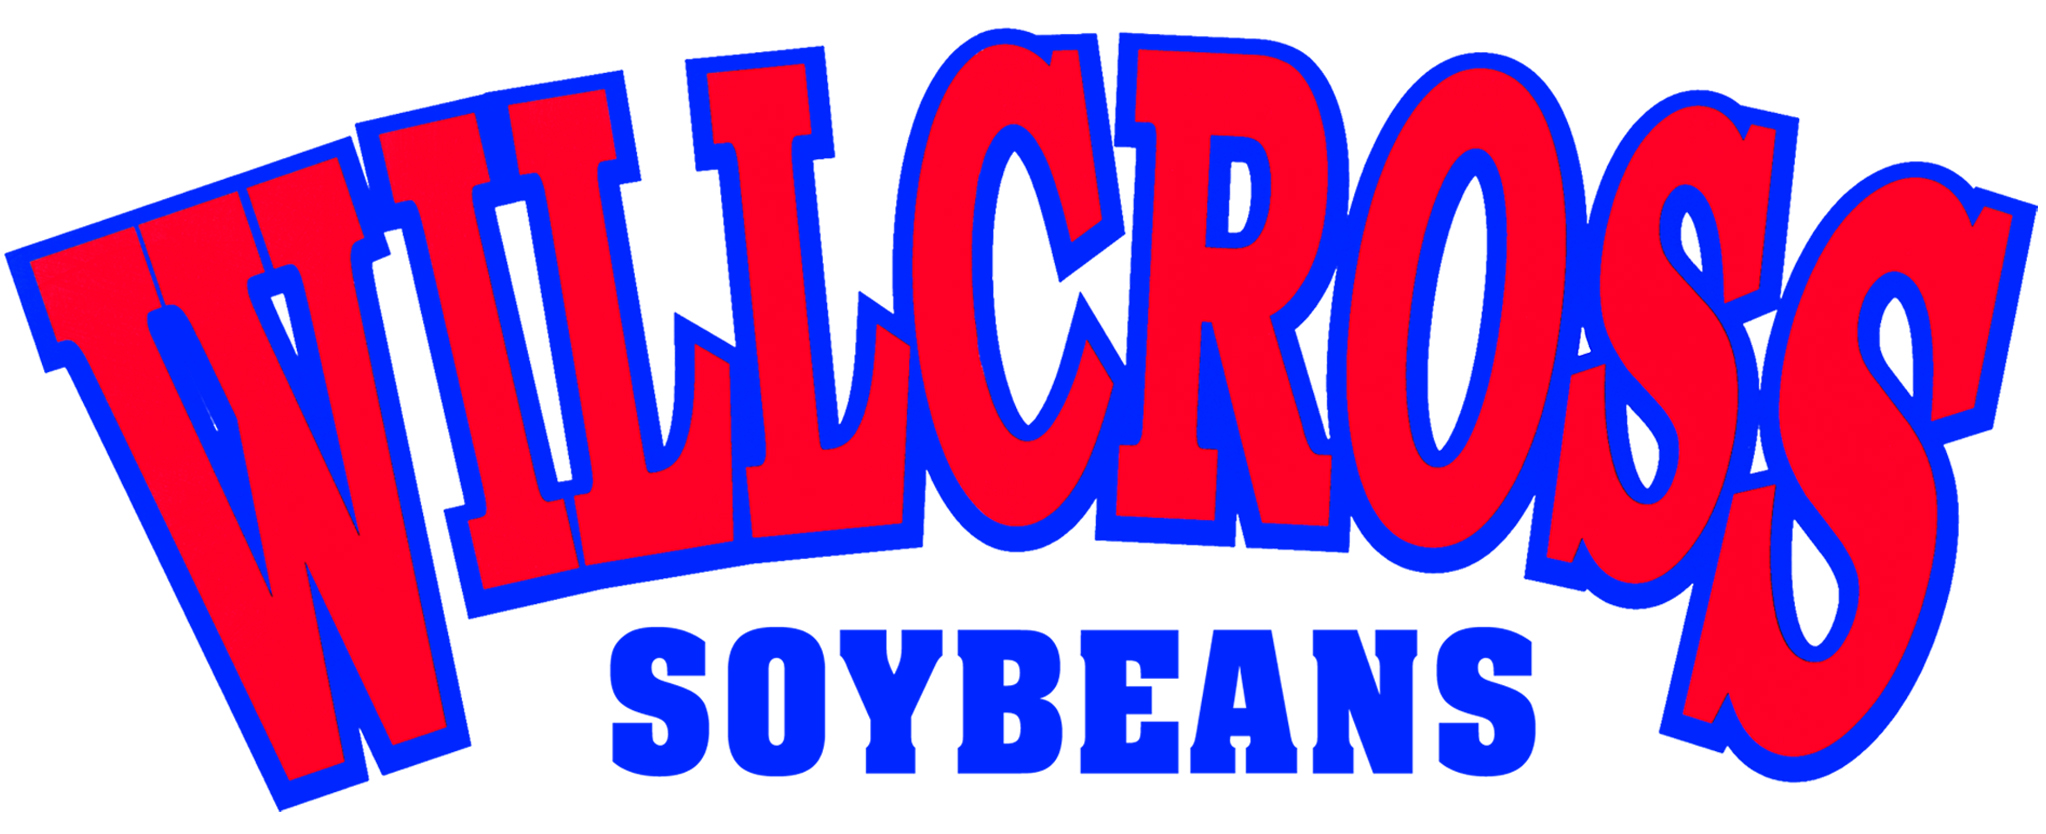 WillcrossSoybeans